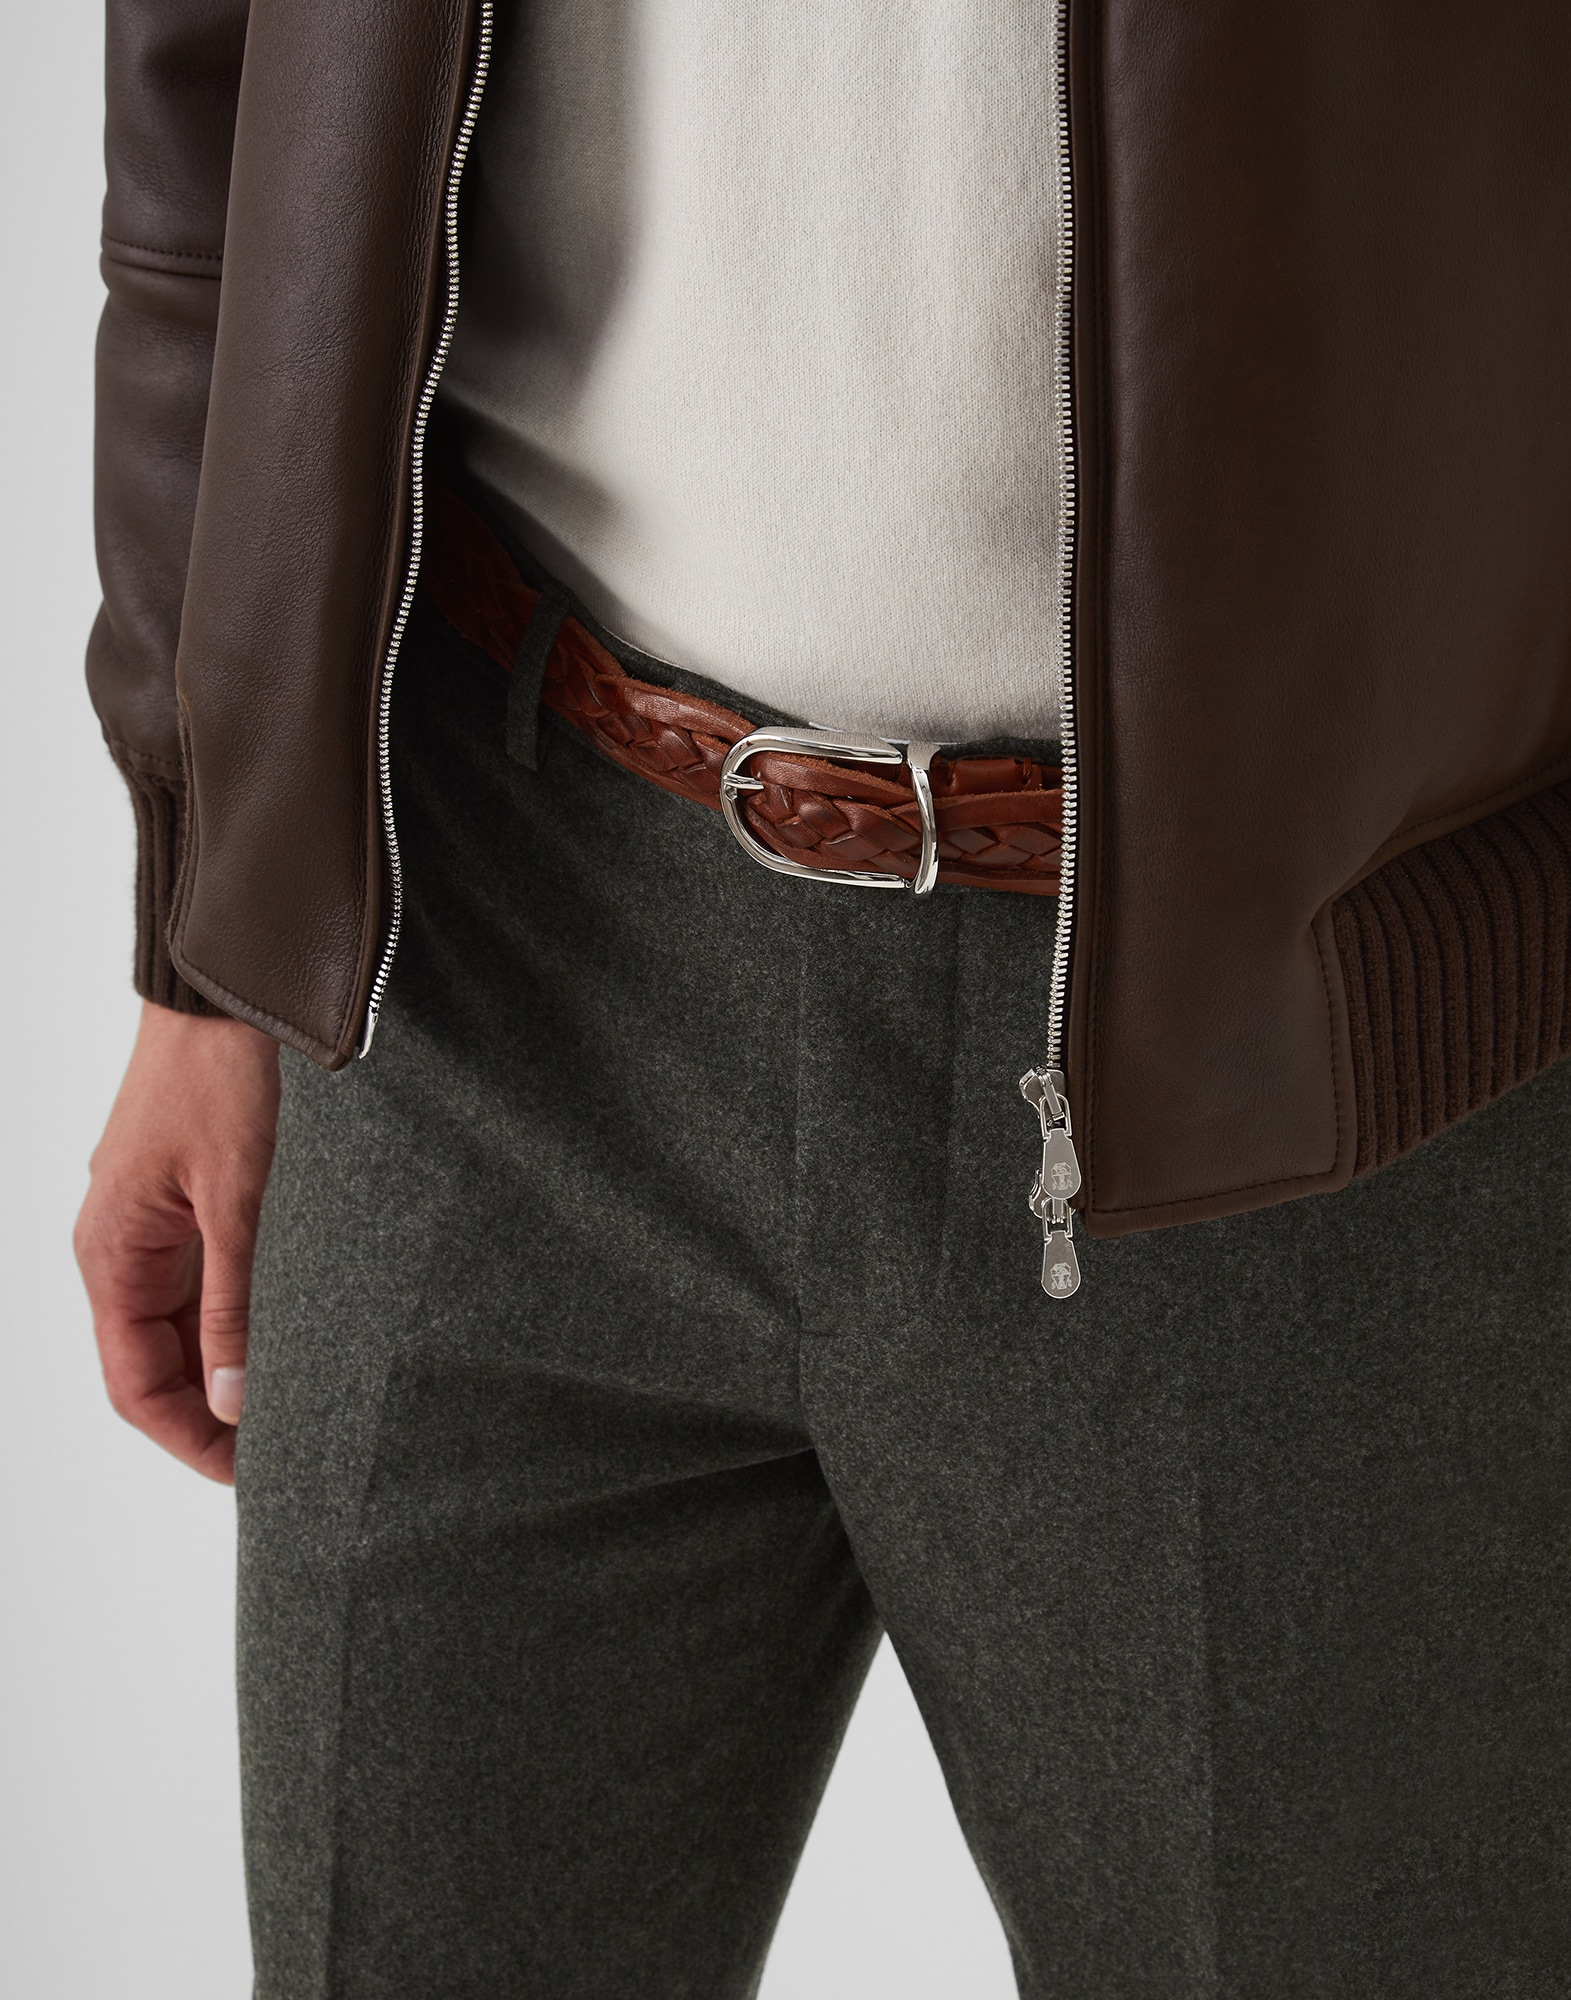 Belt Rum Man 2 - Brunello Cucinelli